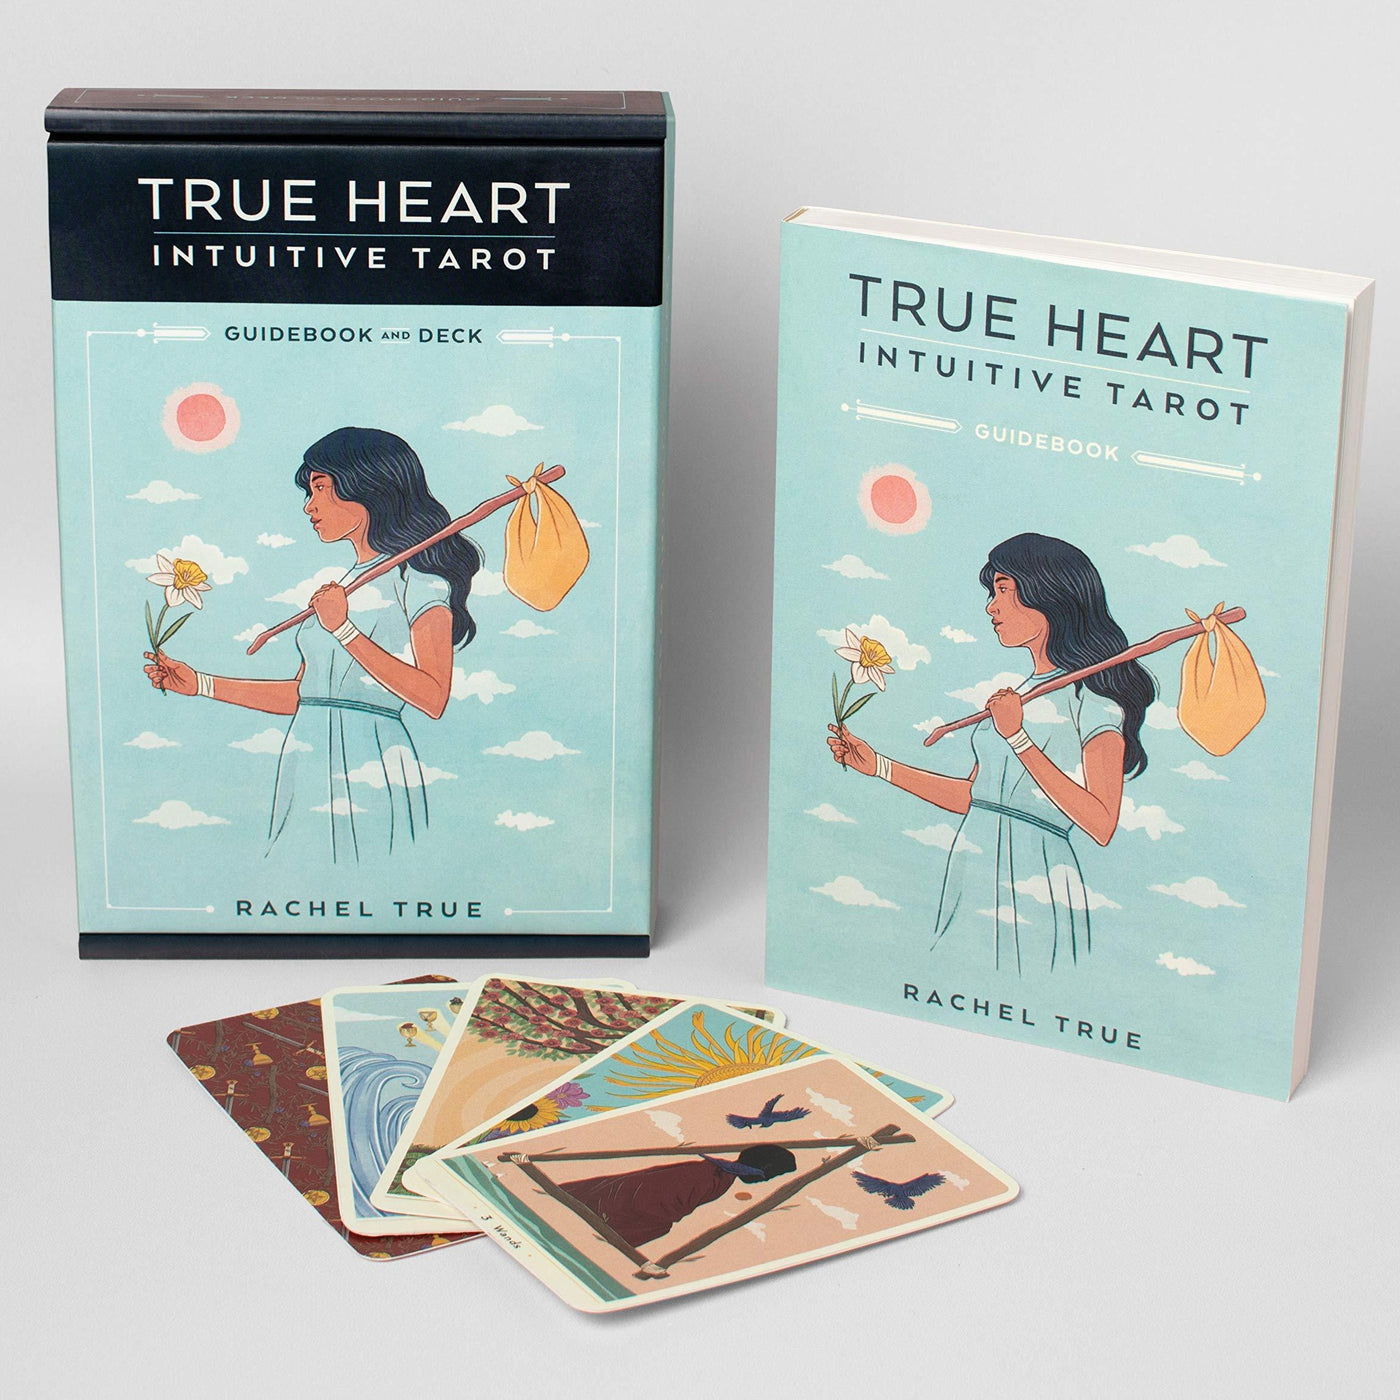 True Heart Intuitive Tarot